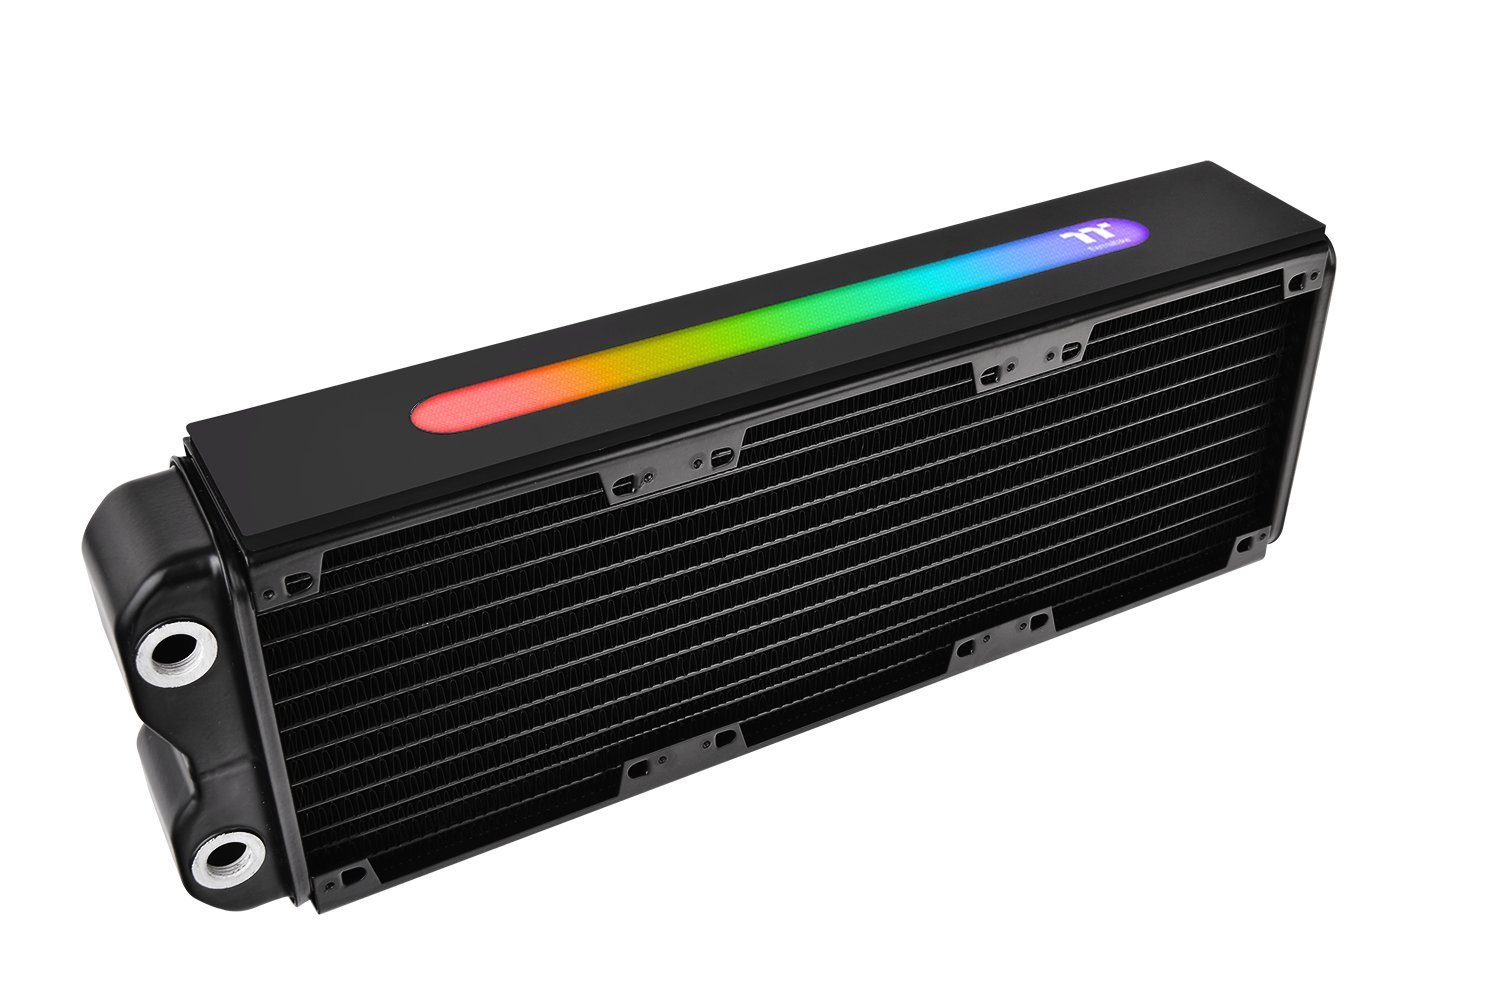 Thermaltake Pacific RL360 Plus RGB Liquid Cooling System Radiator - Black